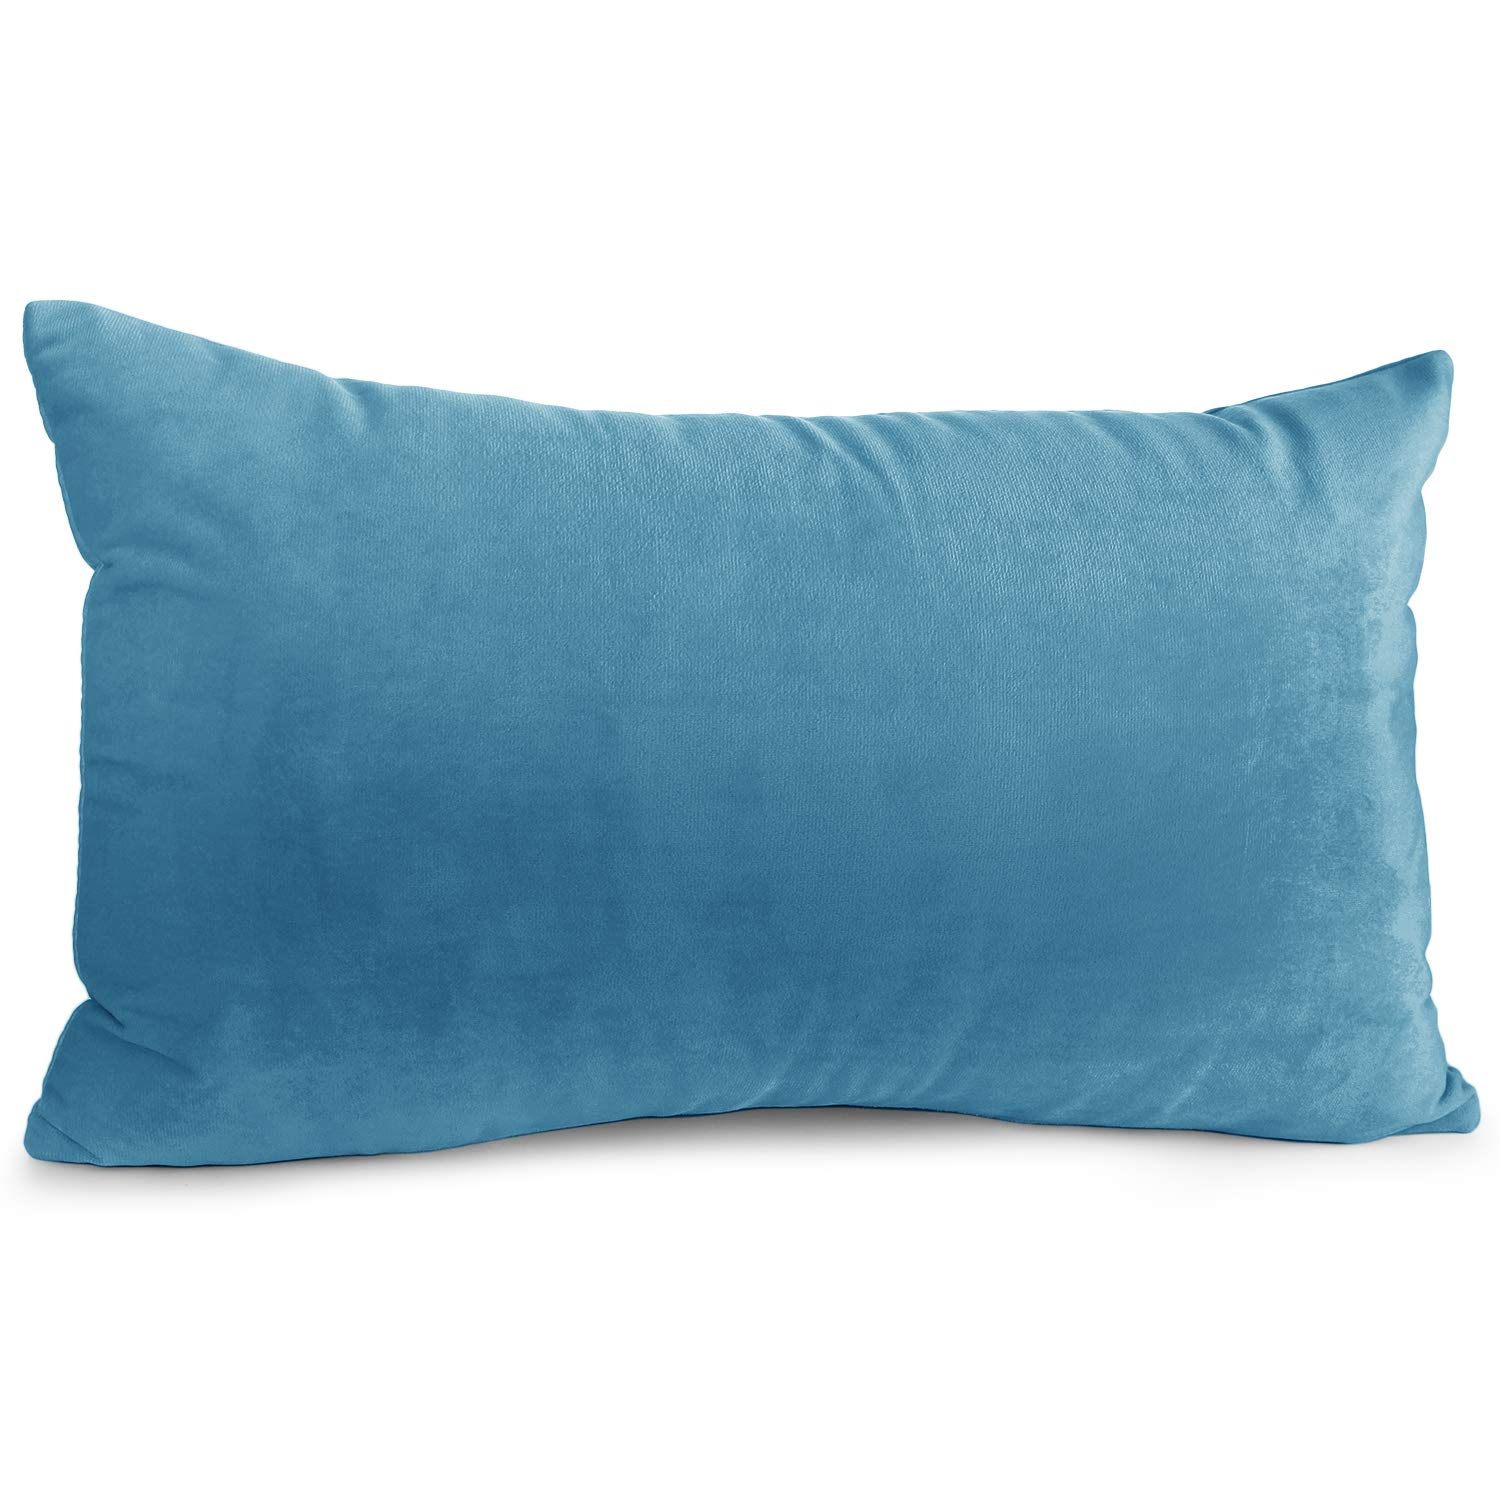 """Nestl Bedding Throw Pillow Cover 12"""" x 20"""" Soft Square Decorative Throw Pillow Covers Cozy Velvet Cushion Case for Sofa Couch Bedroom - Blue Heaven"""